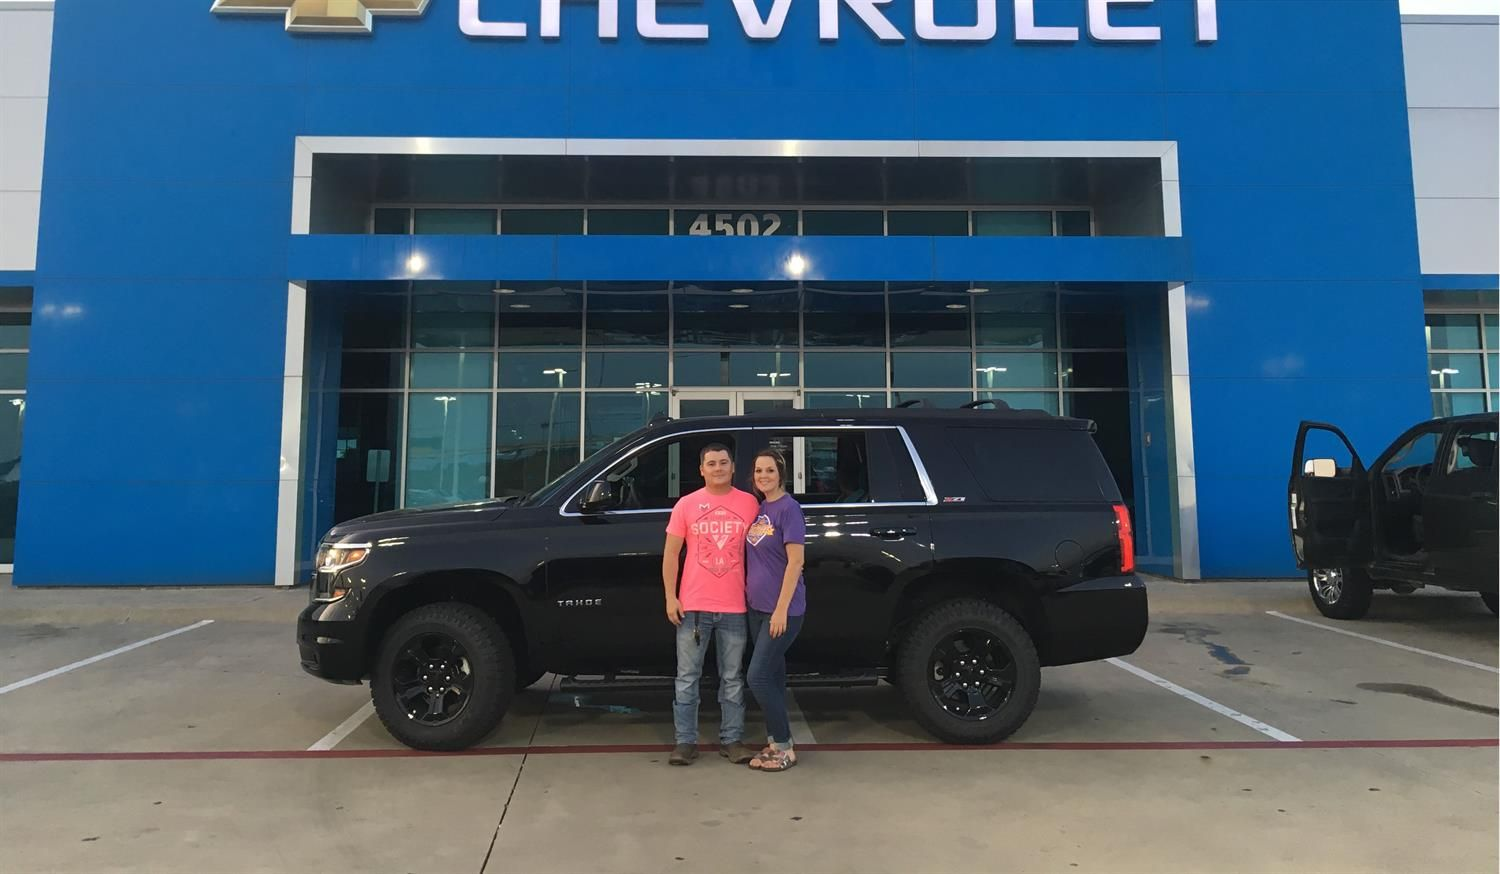 Dustin and Ashley, we hope you enjoy your new 2017 CHEVROLET TAHOE